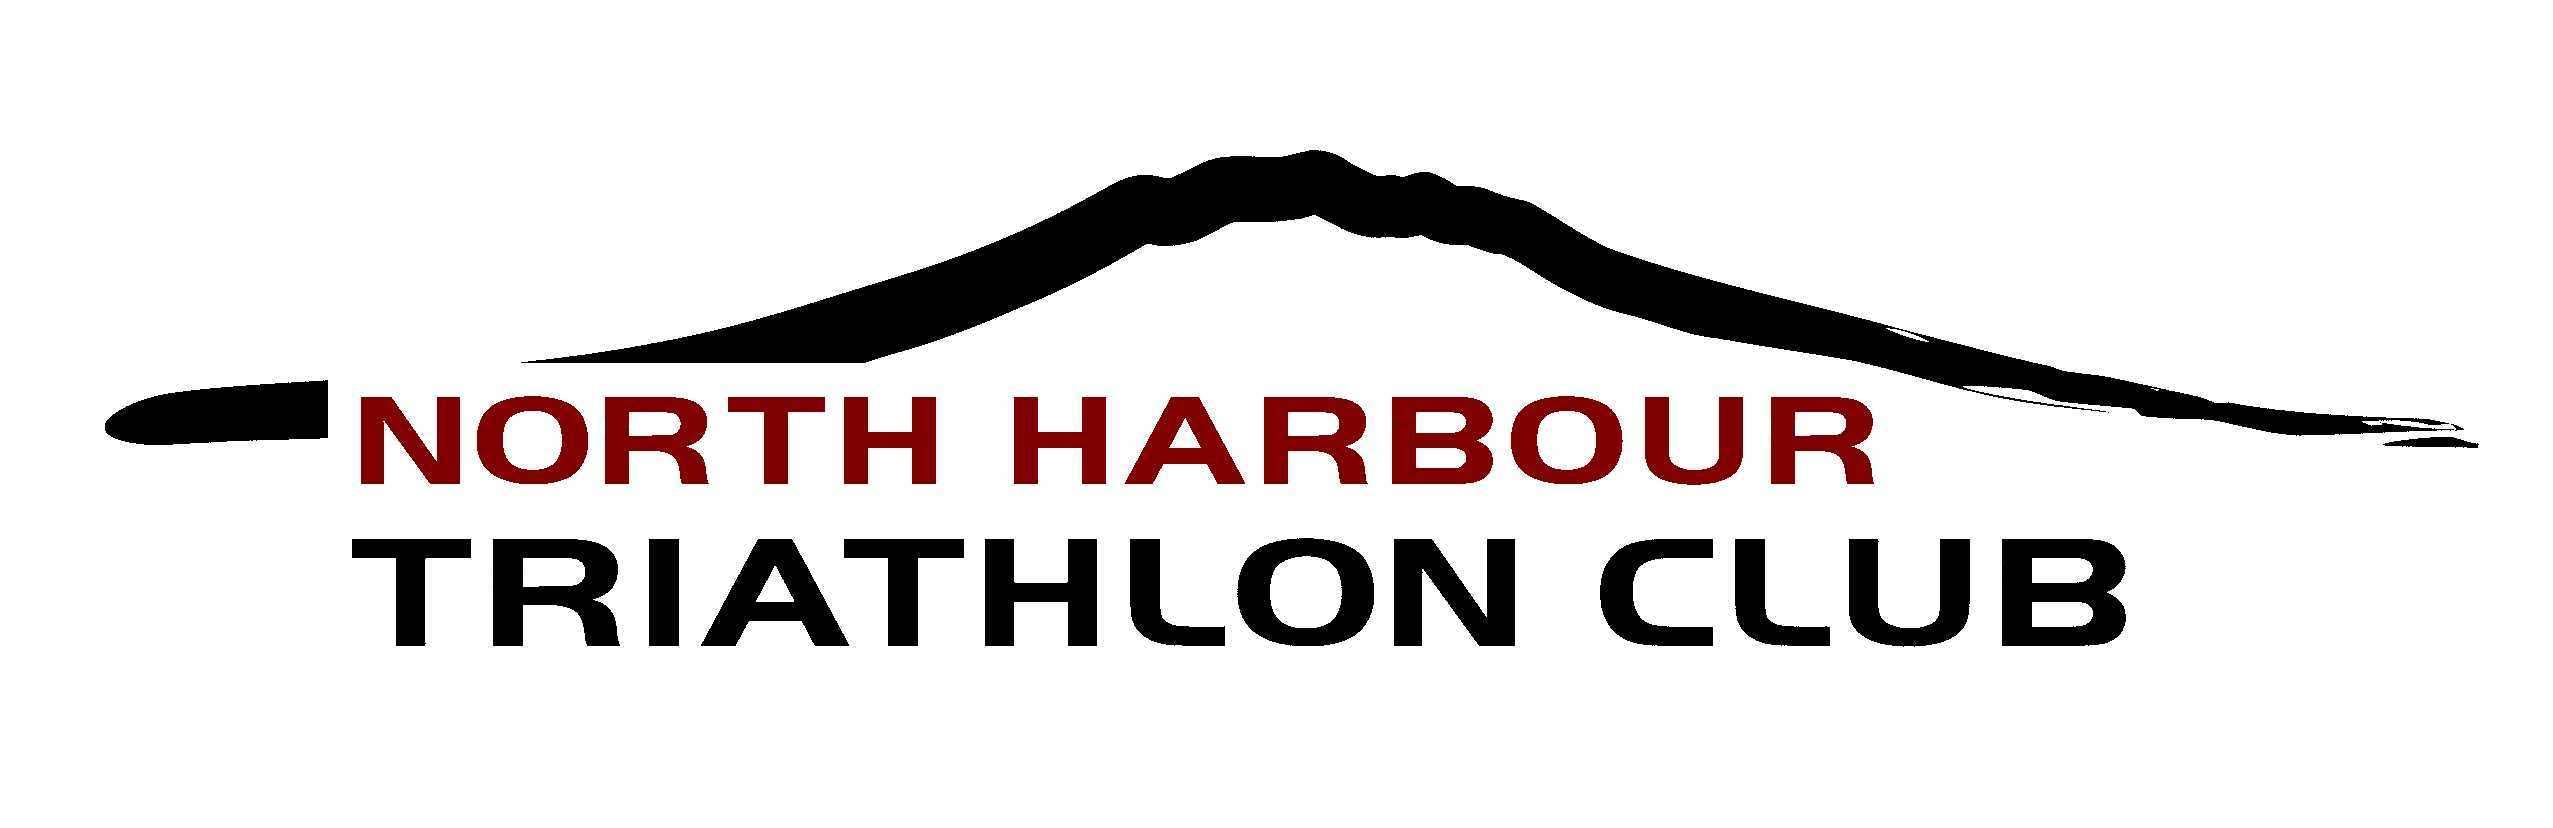 North Harbour Triathlon Club Inc Logo